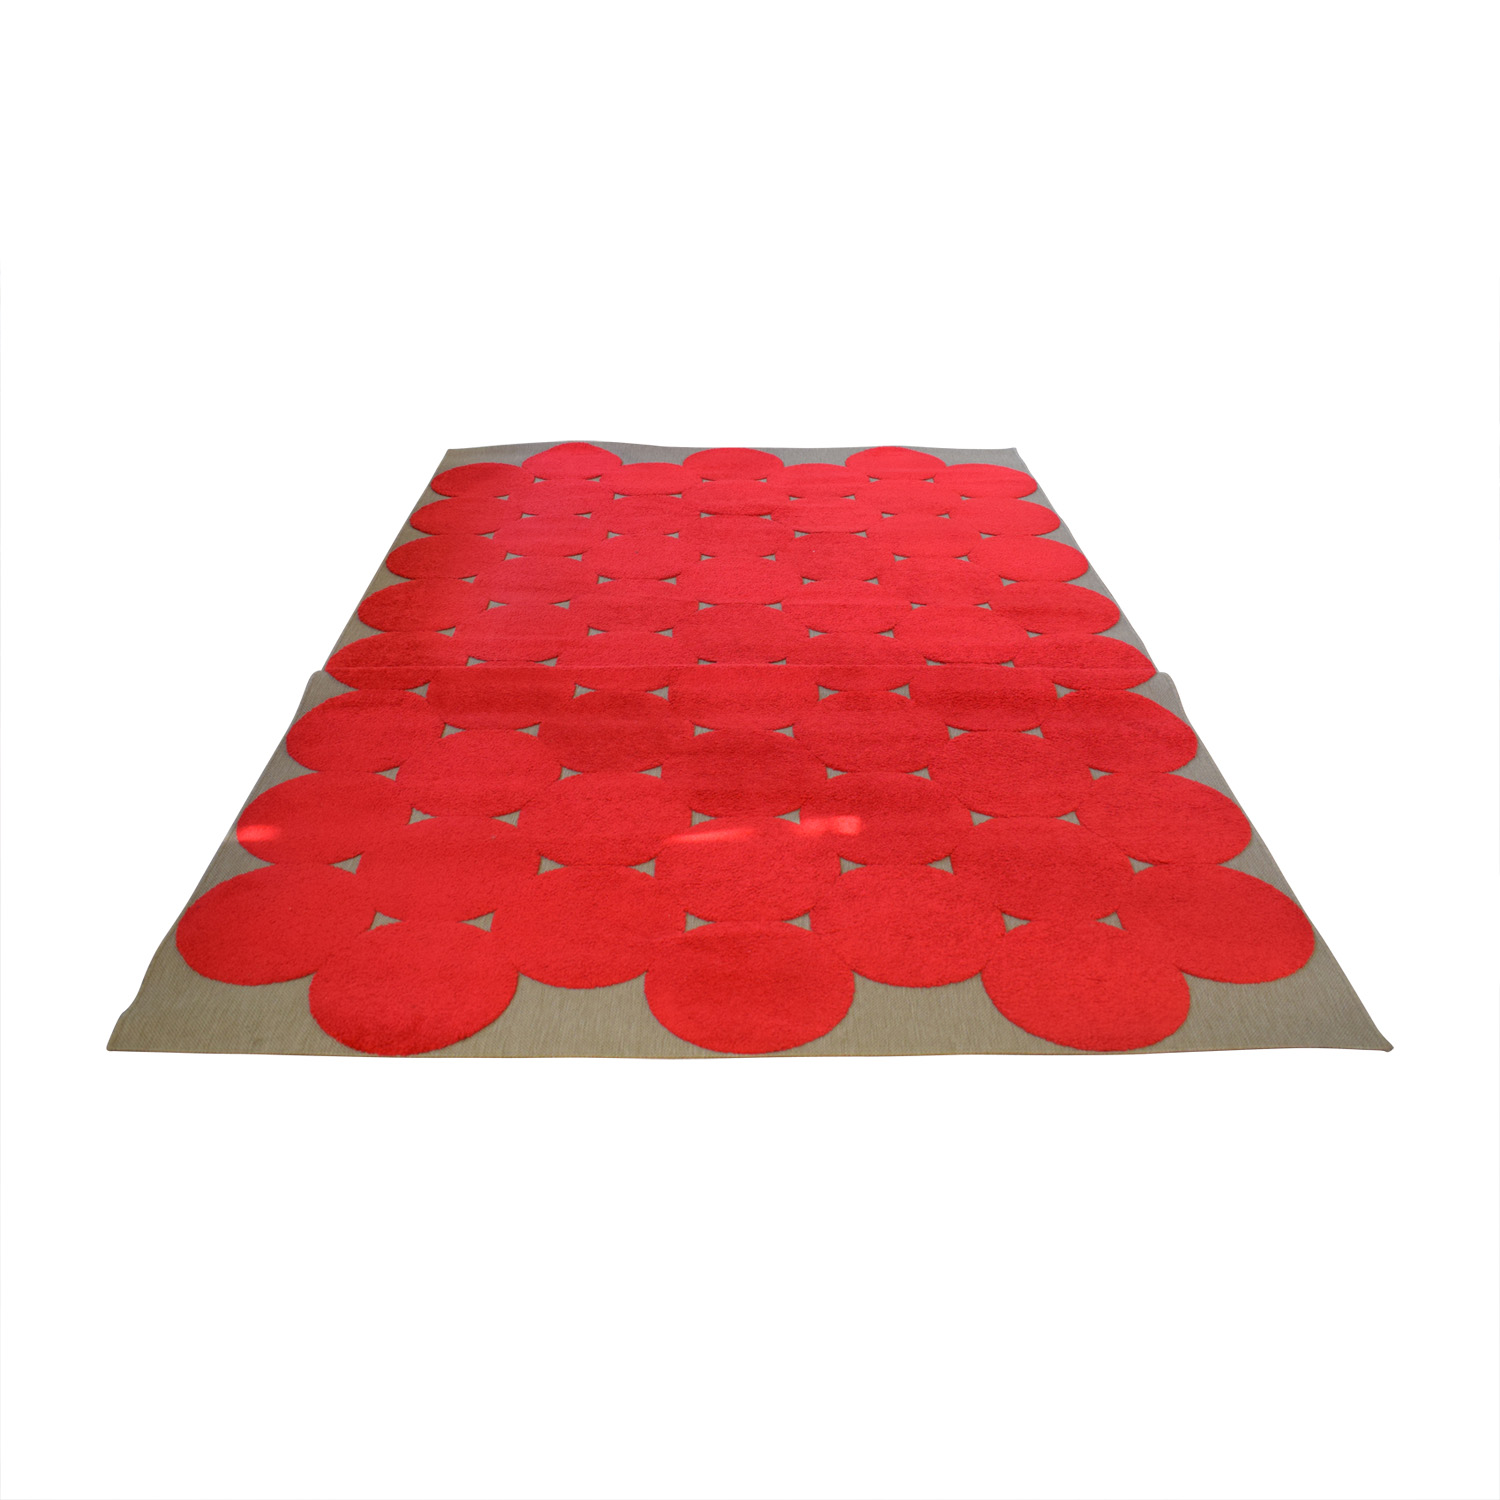 IKEA IKEA Red Circle Rug for sale